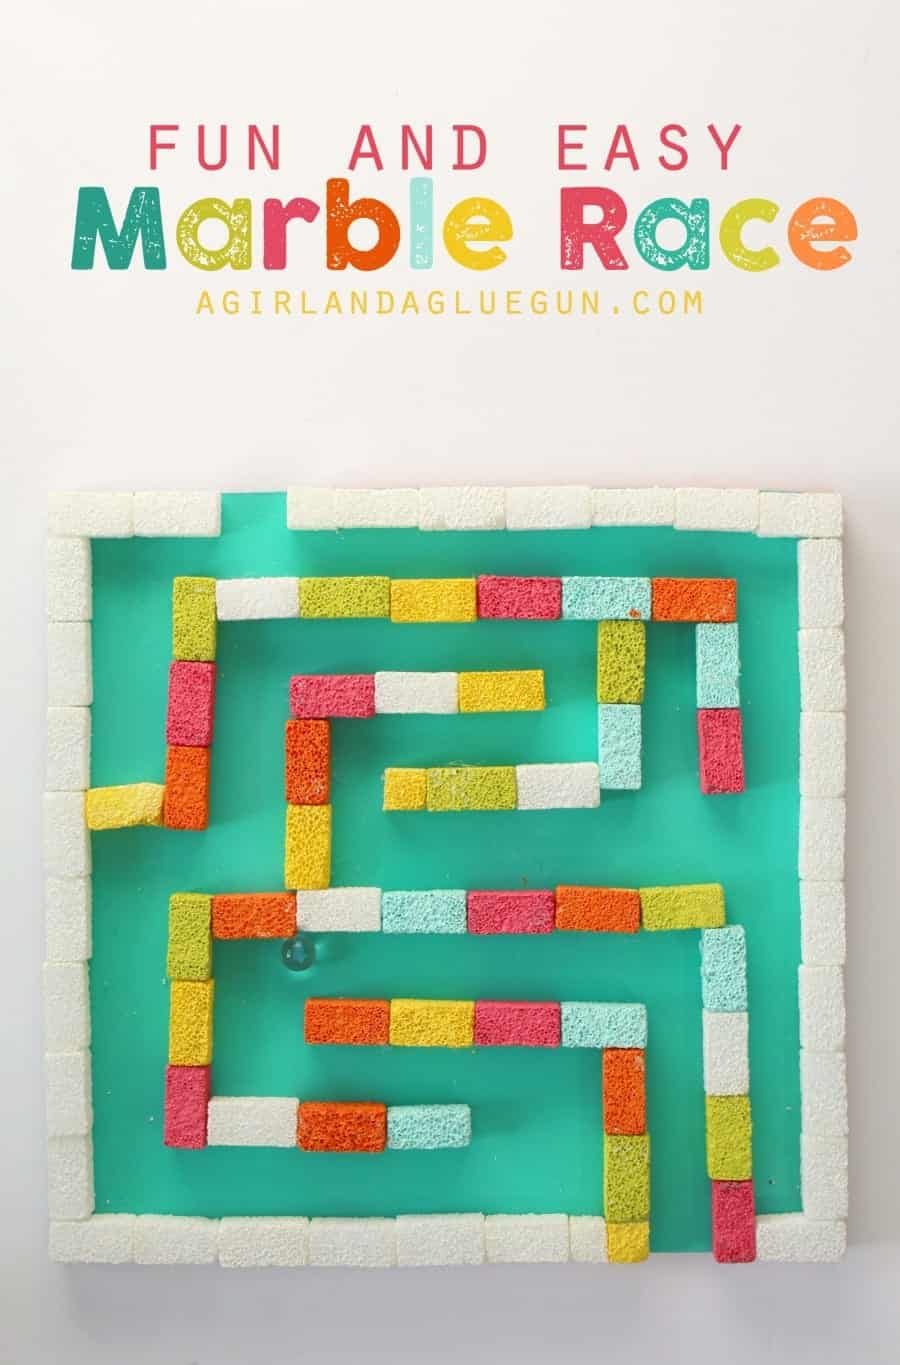 Make this adorable colorful marble race! Make it extra hard or easy! Kids love playing it!